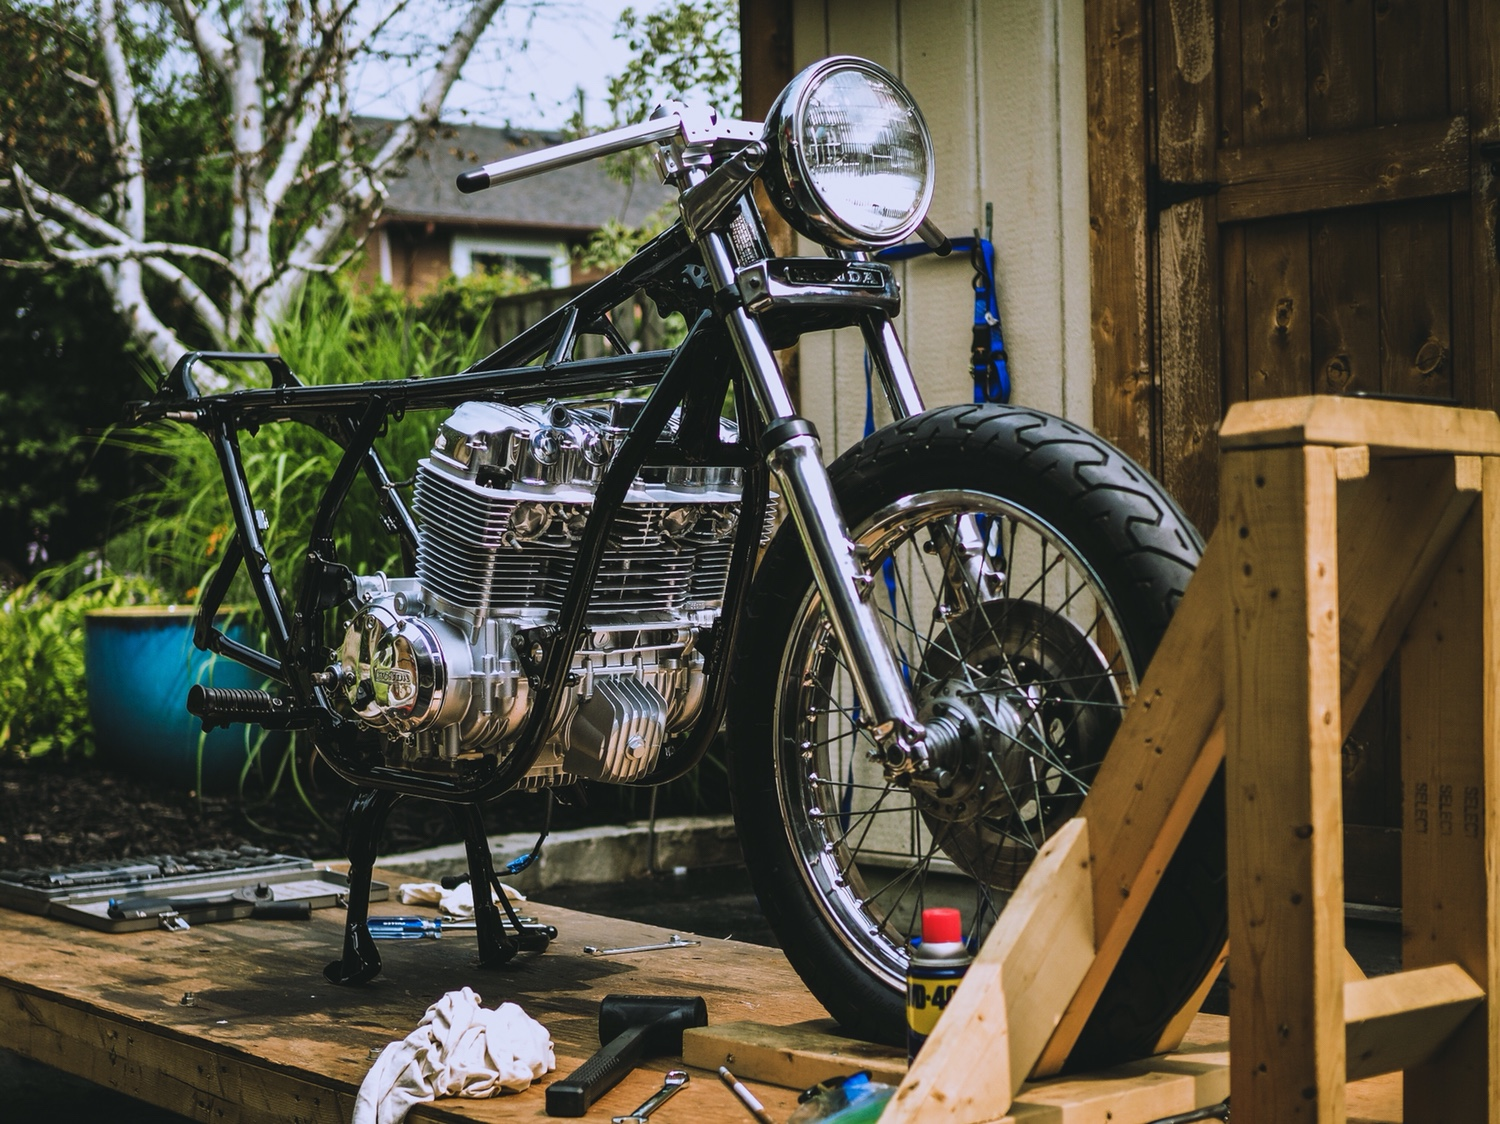 CB750K 78: Case Cover, gasket sealant or dry, once and for all